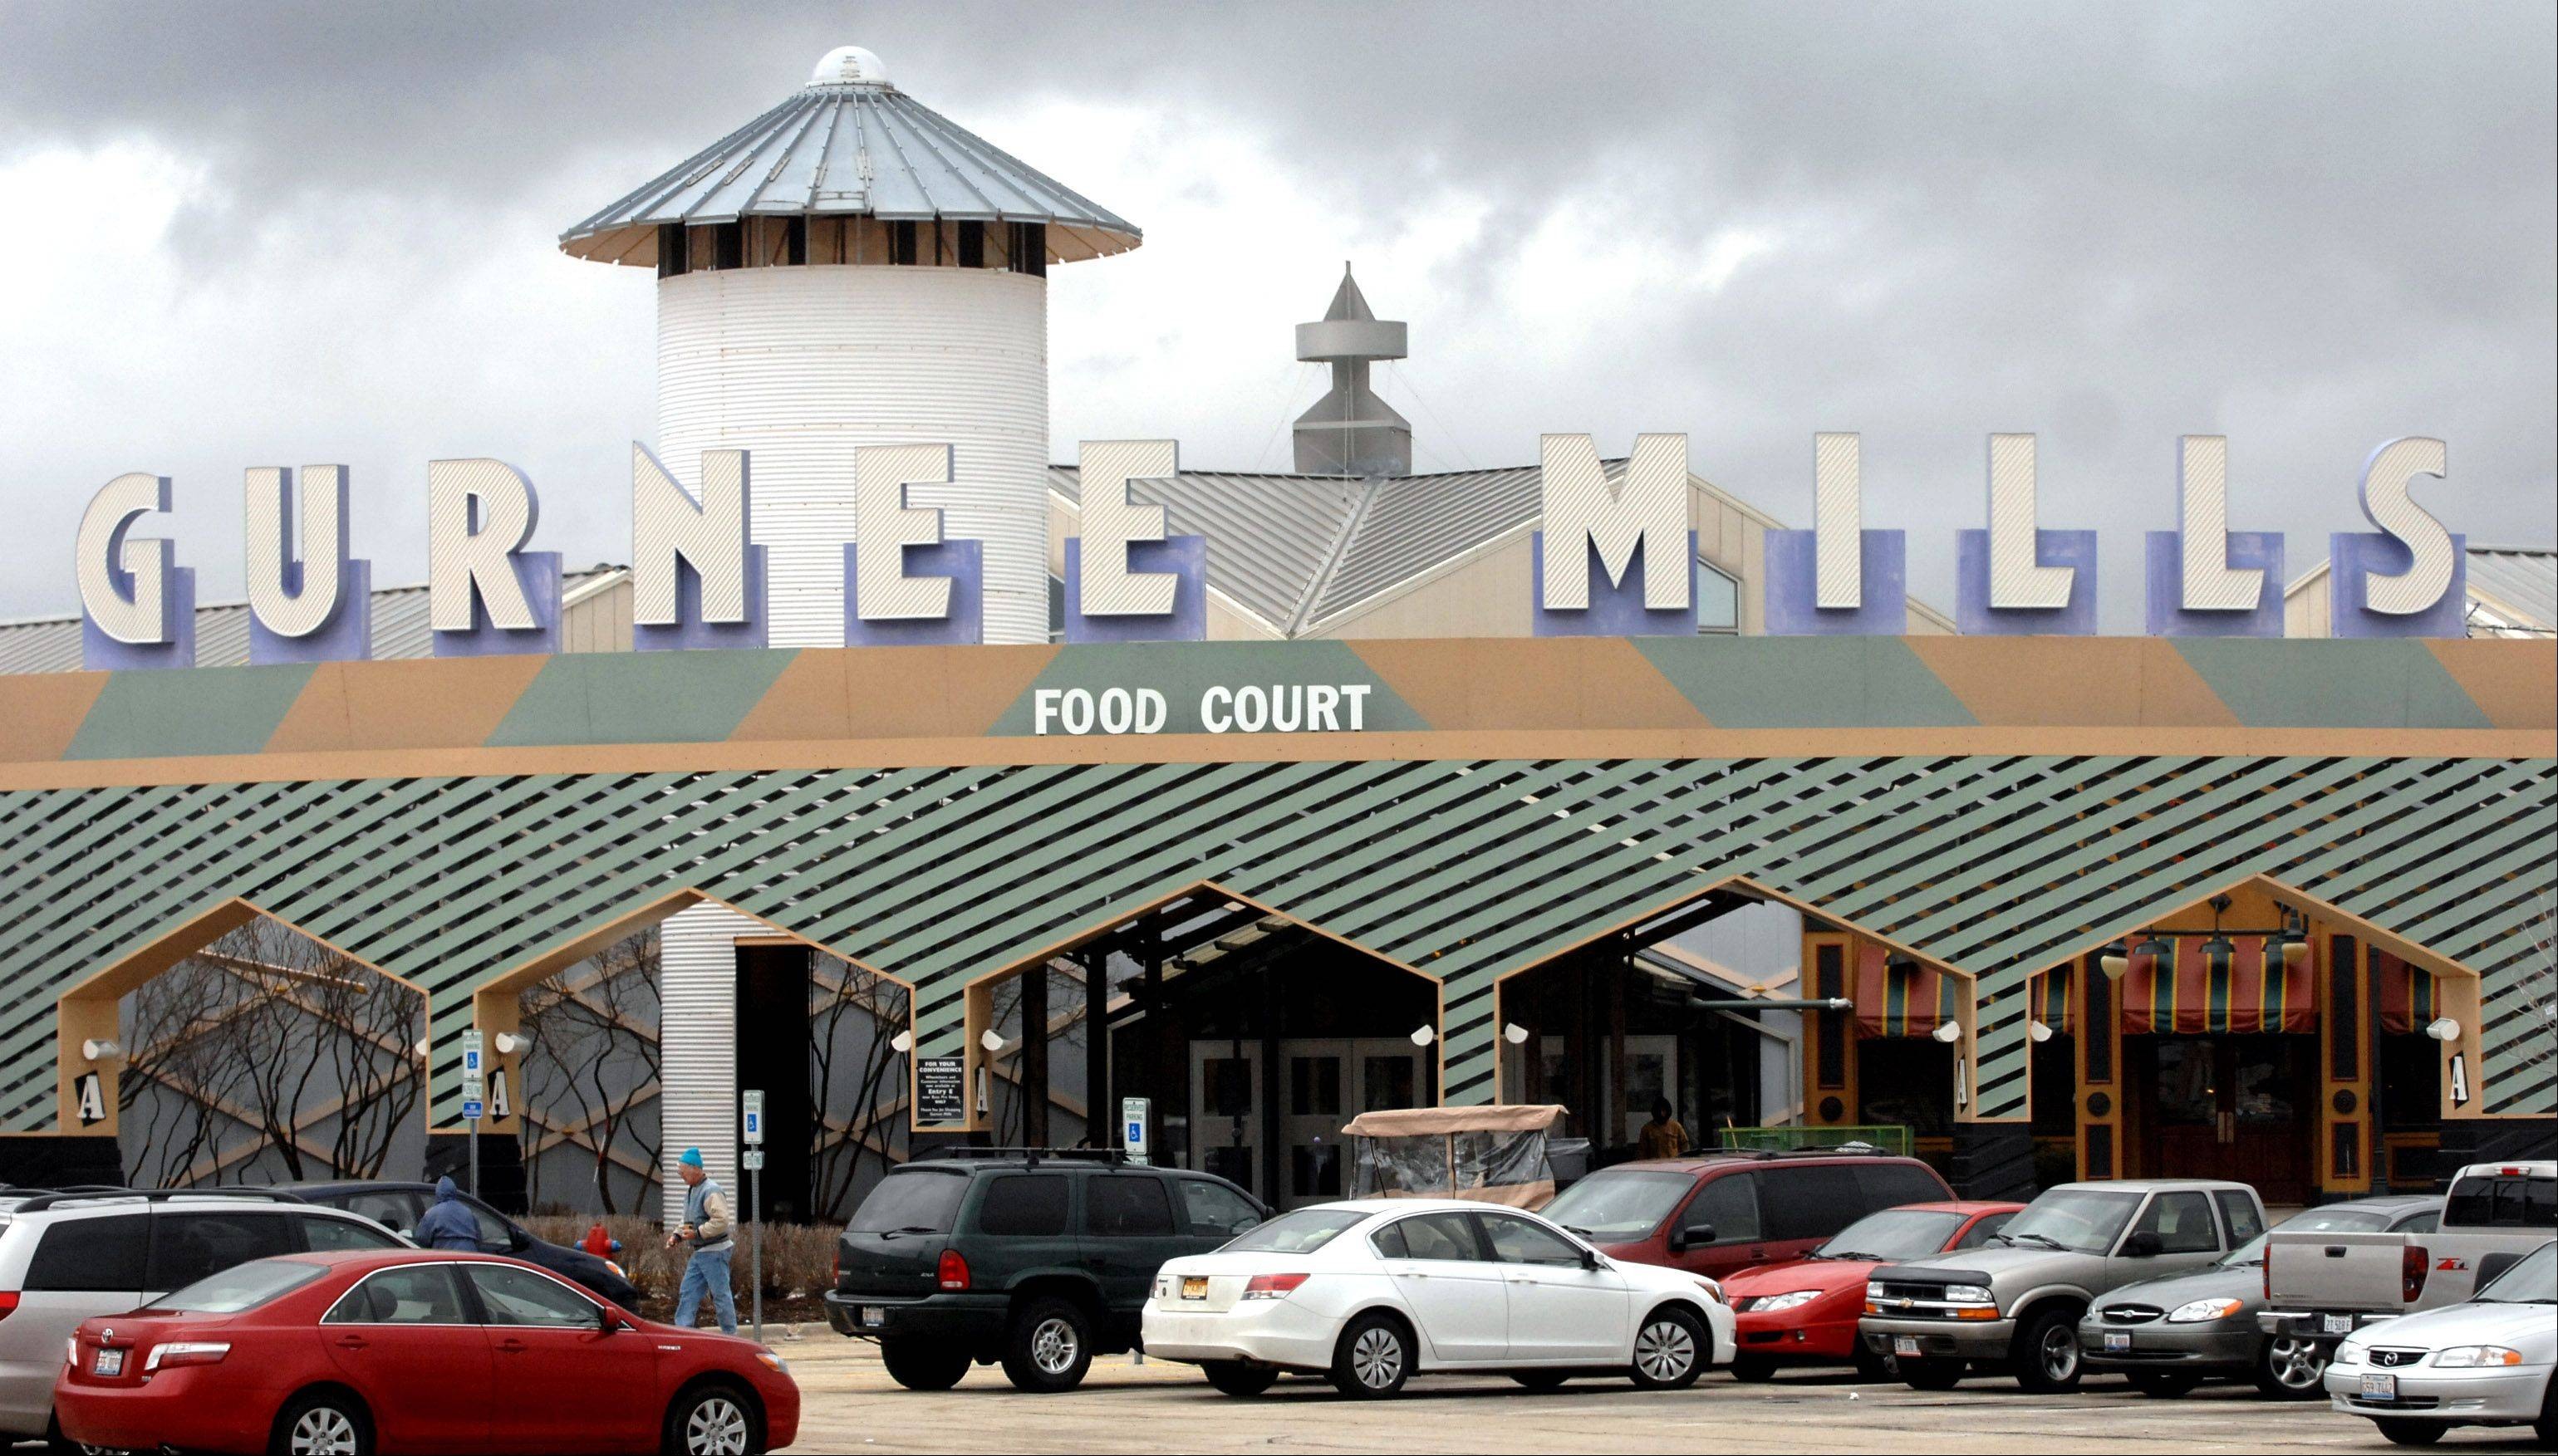 At a Gurnee village board meeting Monday night, mall general manager Randy Ebertowski informed elected officials the doors for shopping will open at 8 p.m. Thanksgiving Day. He said the mall will remain open overnight and won't close until 10 p.m. Friday, Nov. 29.